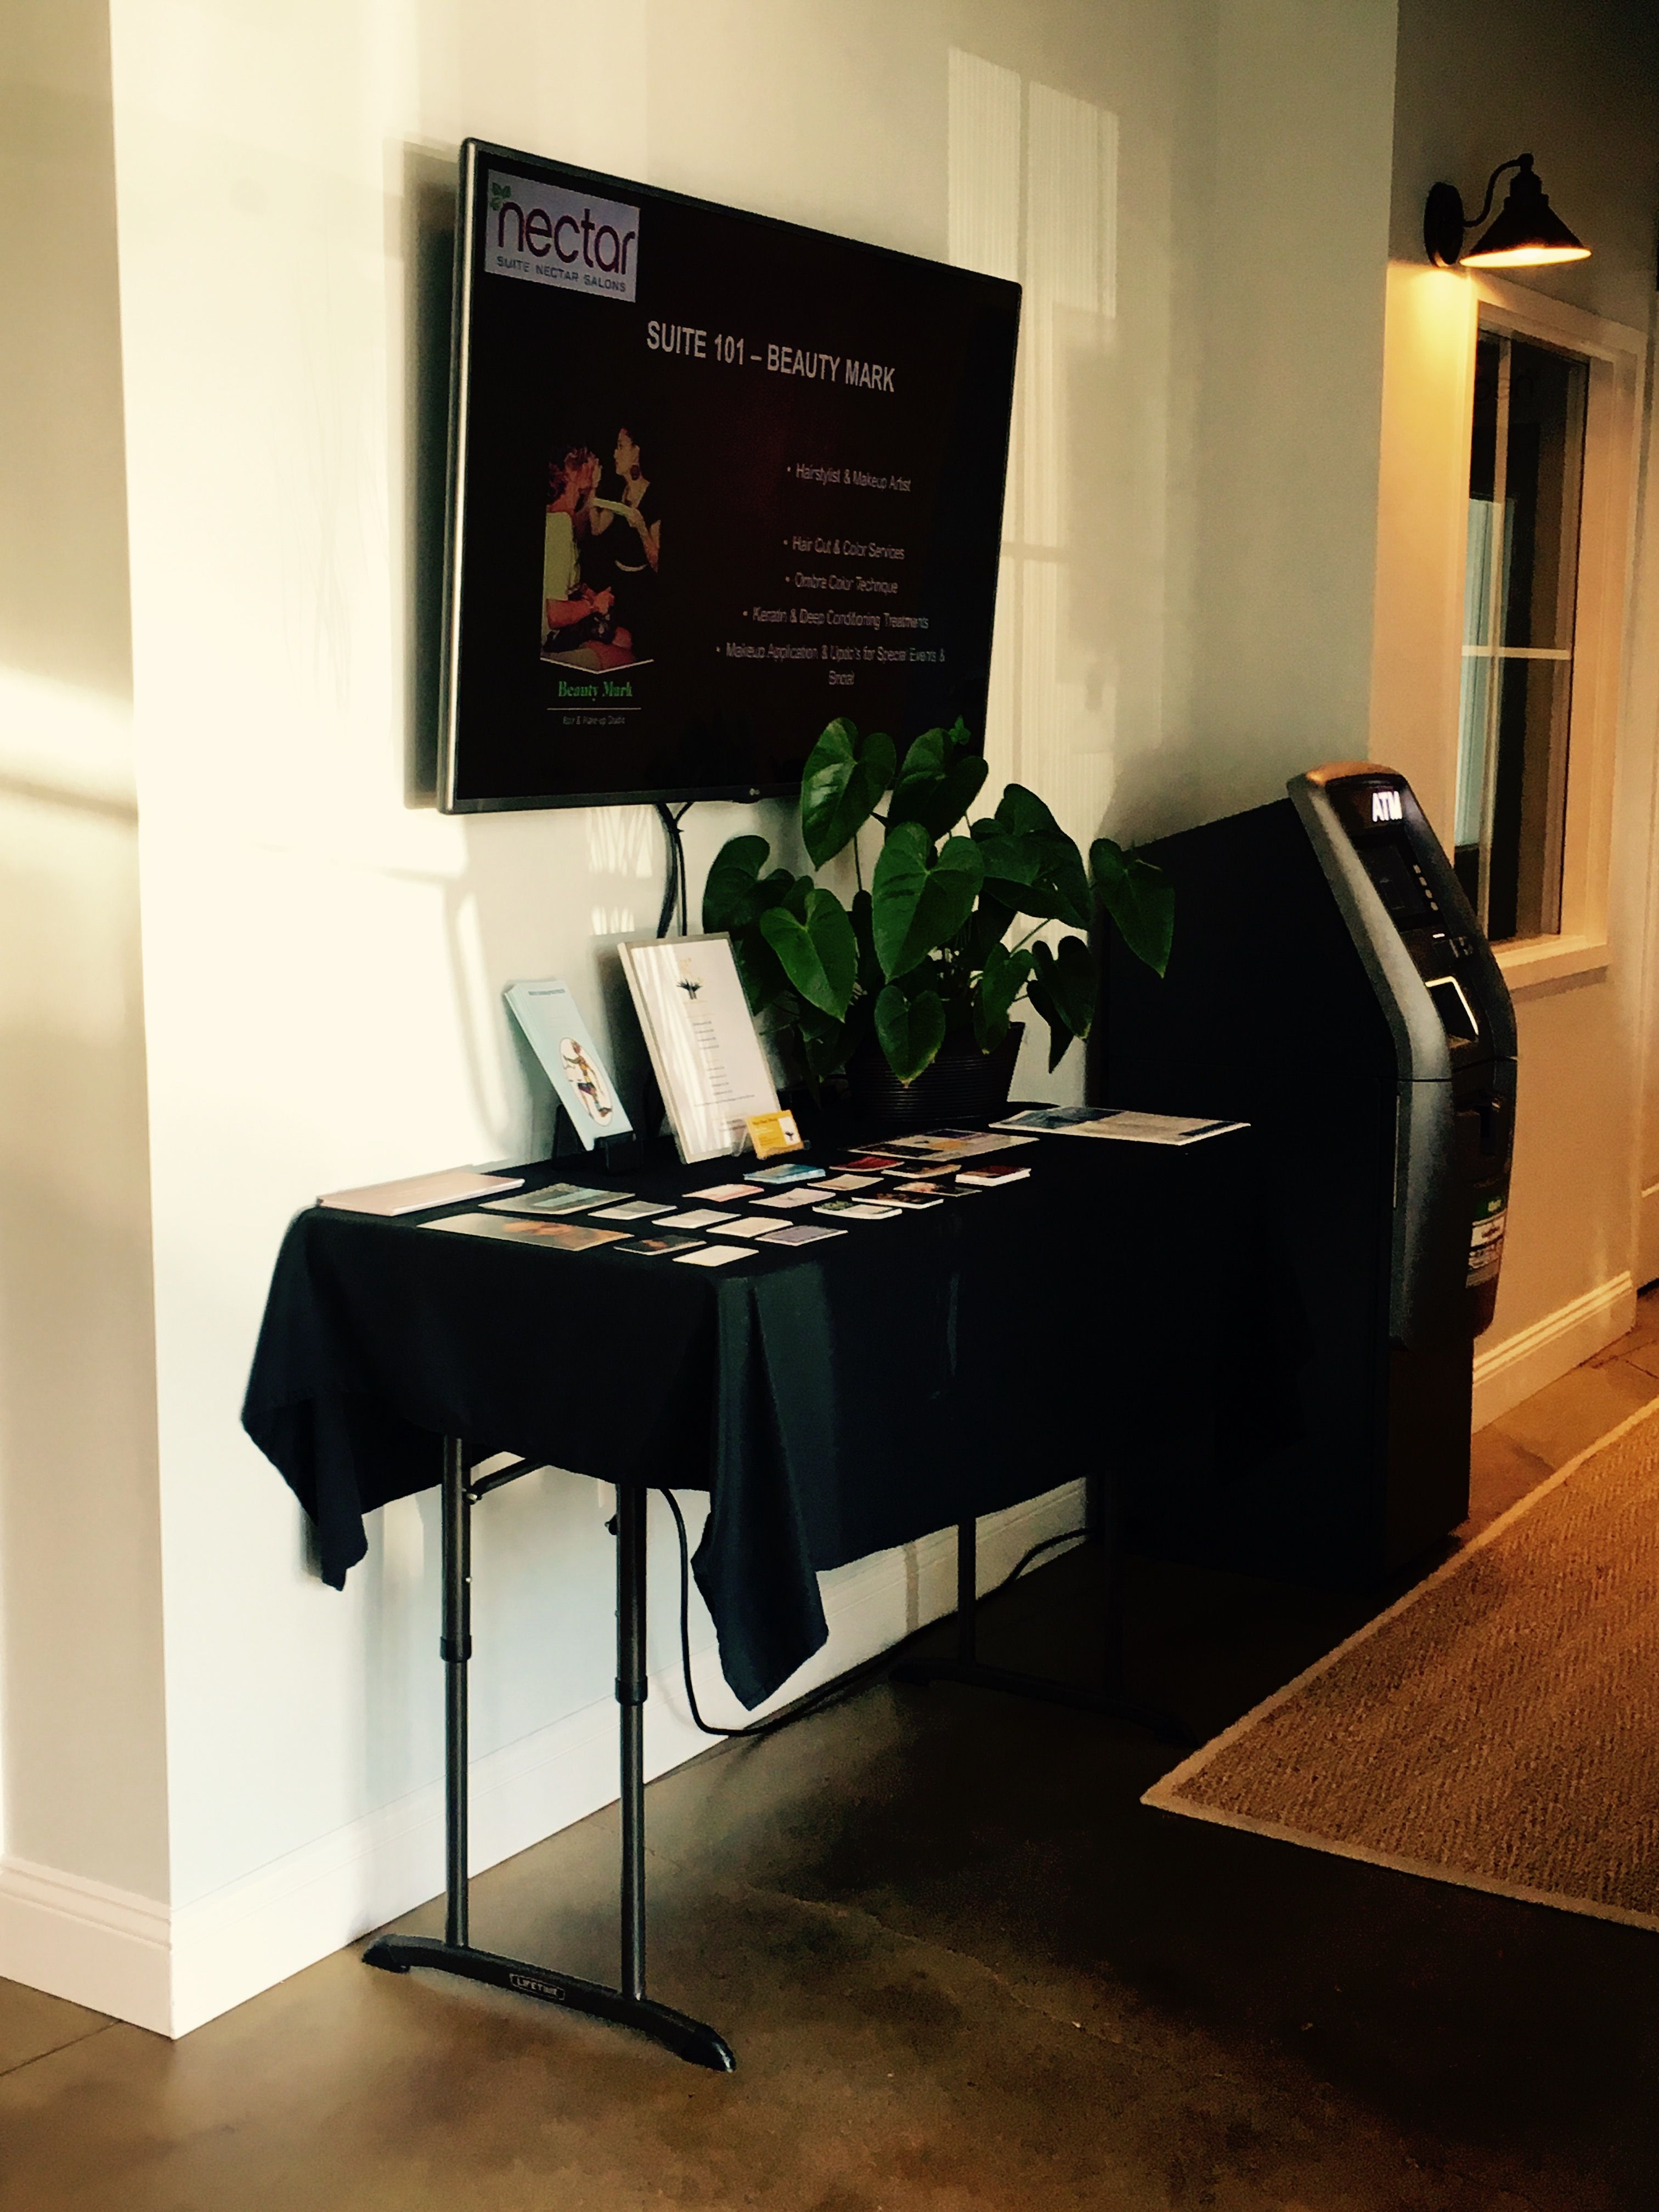 Marketing table w/ slide show relaying services offered for all individual suites at Suite Nectar. #marketingfun #healthbeauty #salonsuites #entrepreneur #beyourownboss